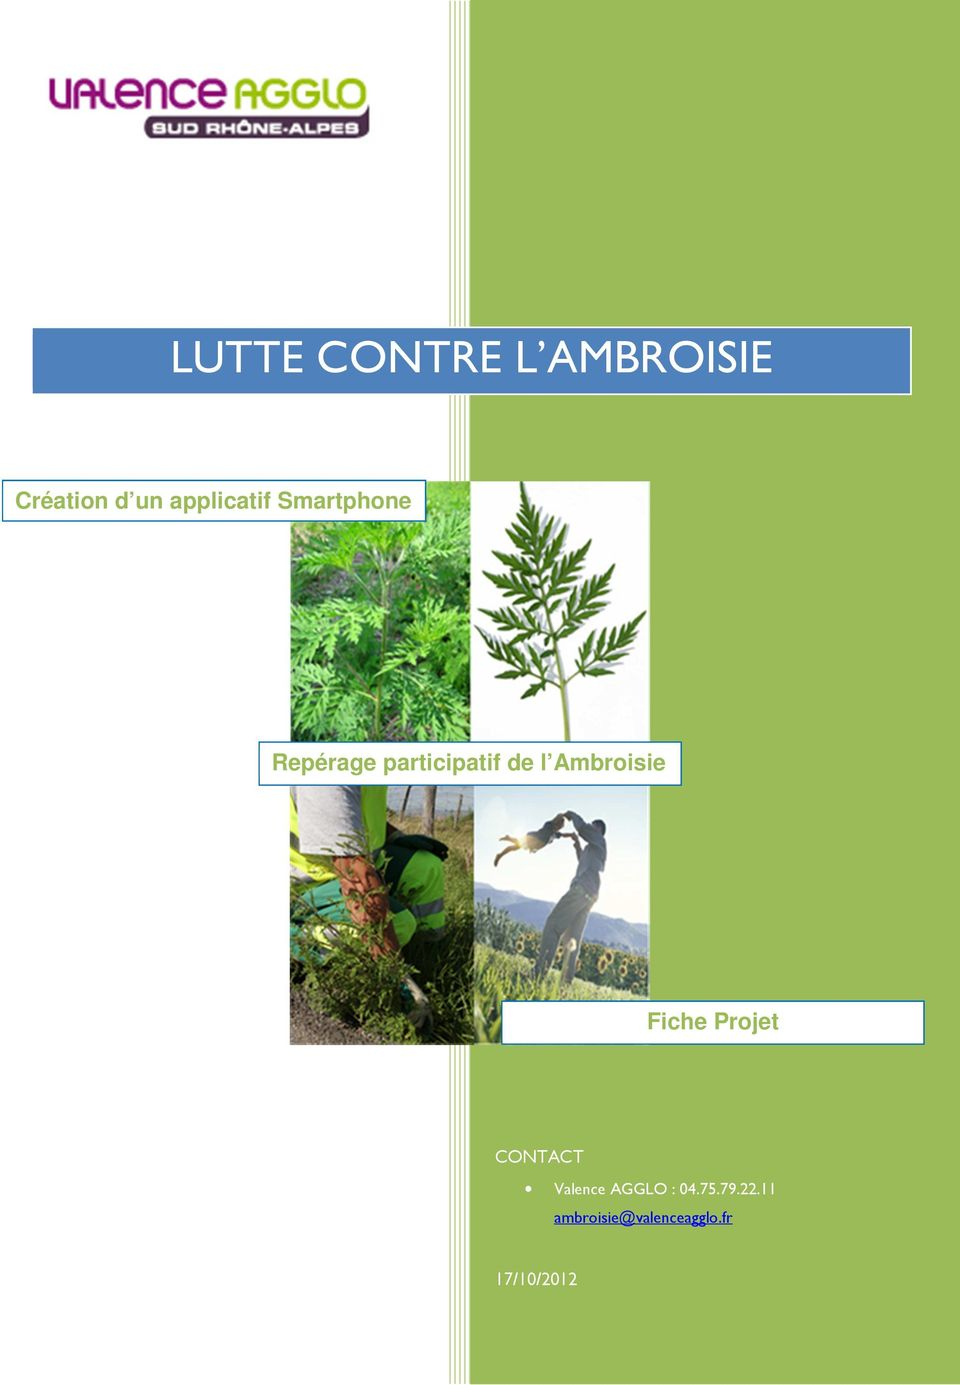 l Ambroisie Fiche Projet CONTACT Valence AGGLO